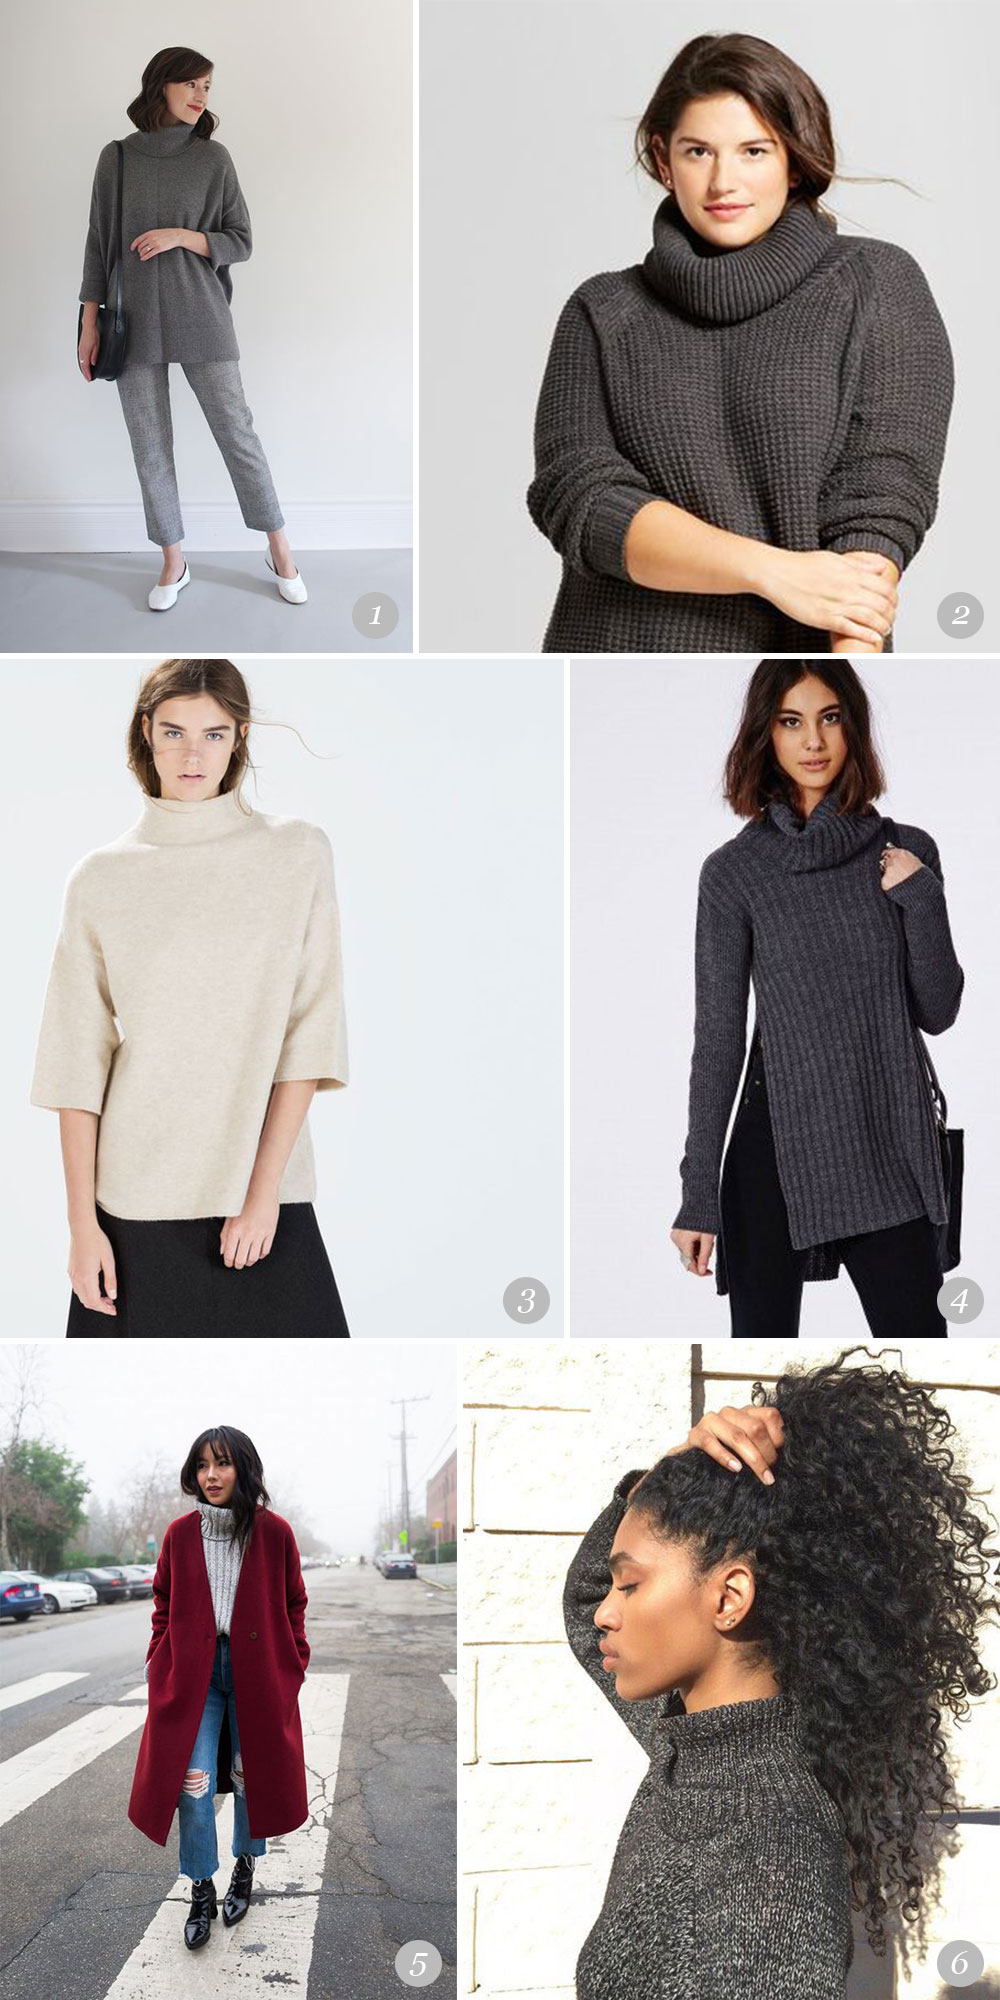 Elliot Sweater and Tee Inspiration